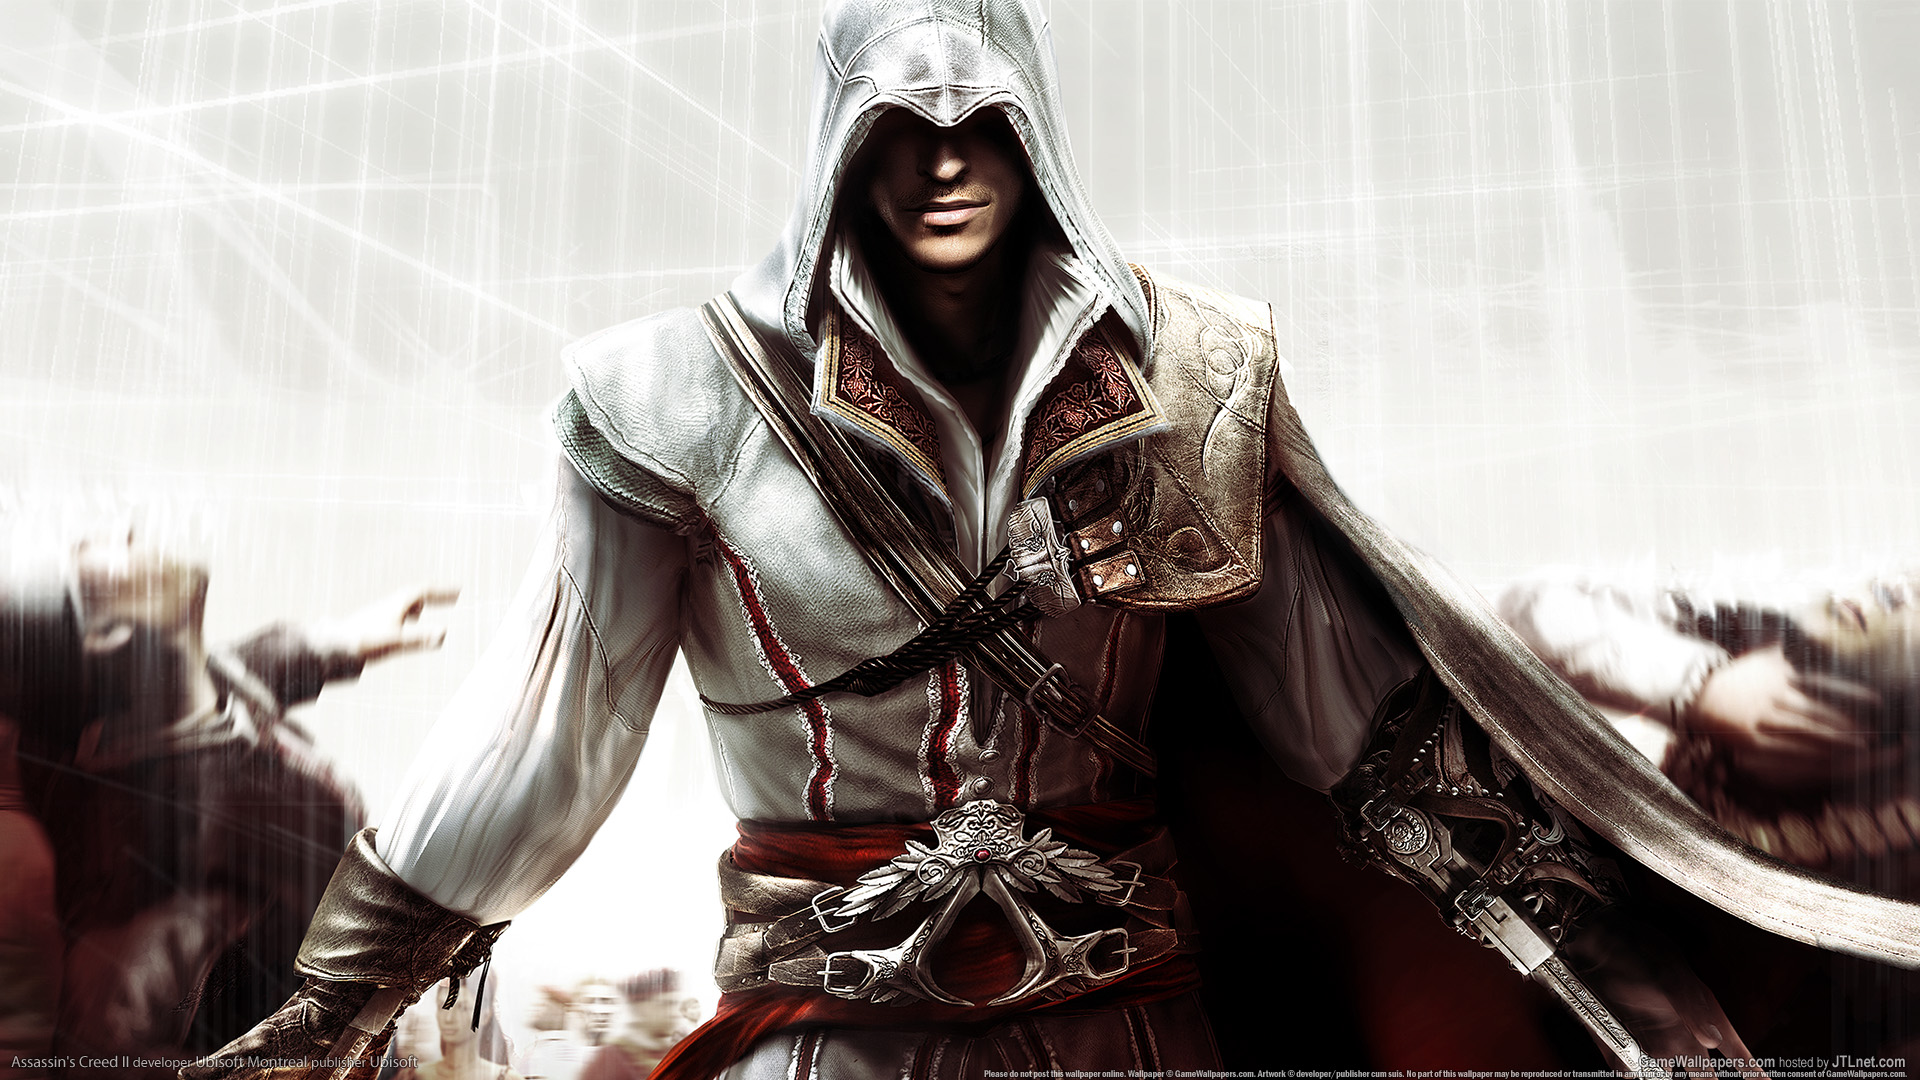 Assassin's Creed II Best Game HD Wallpapers